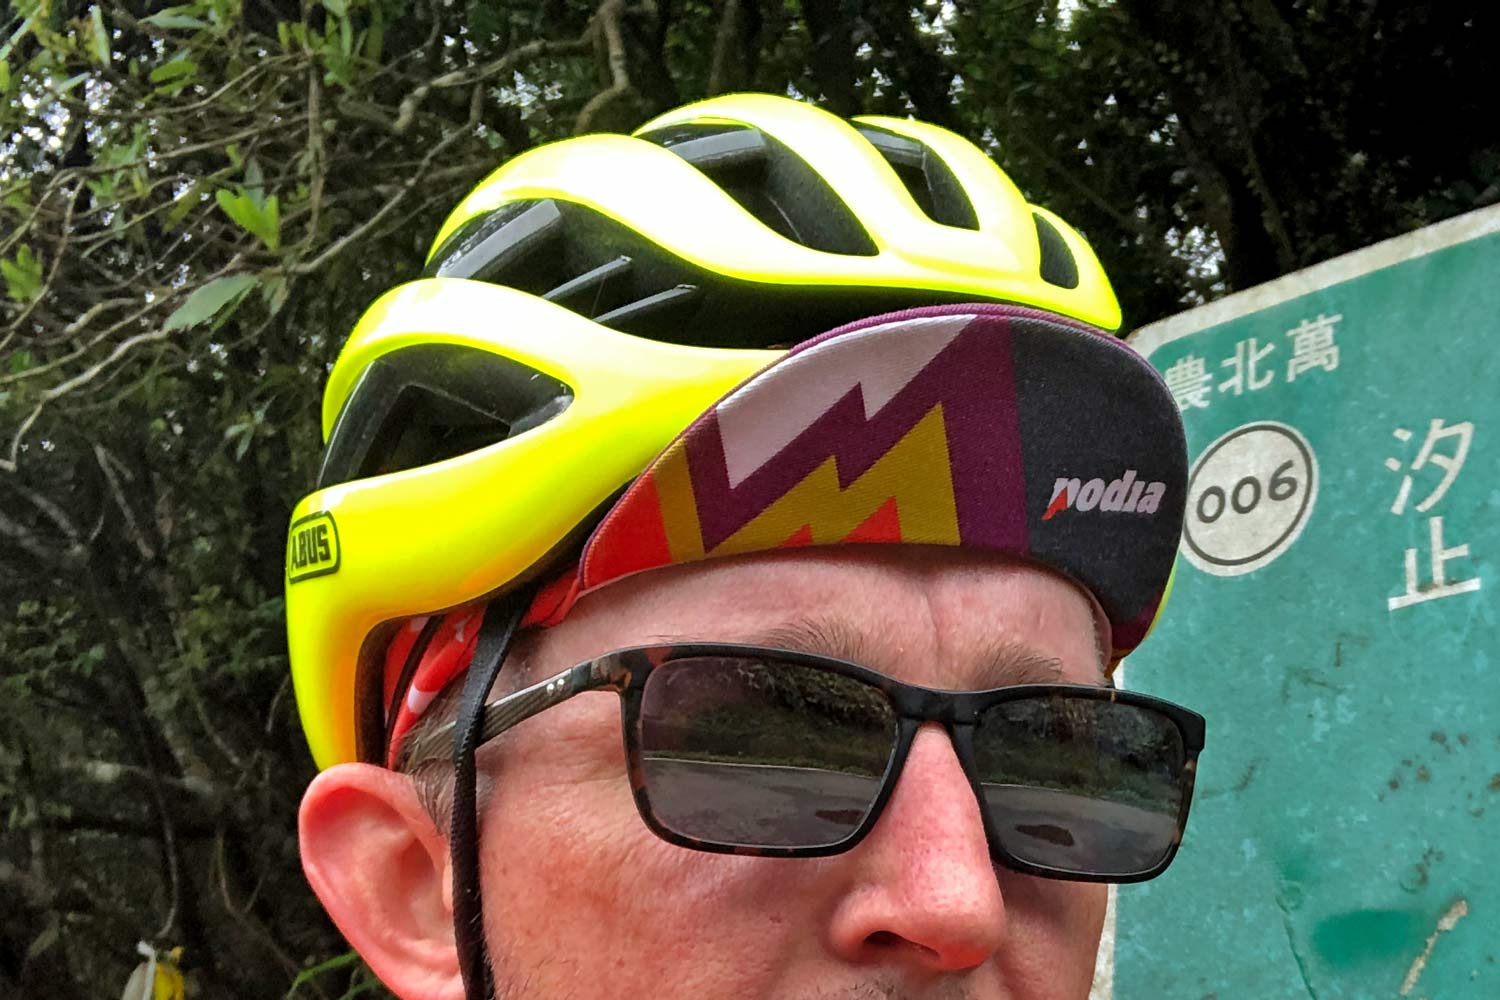 Abus Airbreaker helmet review, lightweight vented aero road bike helmet